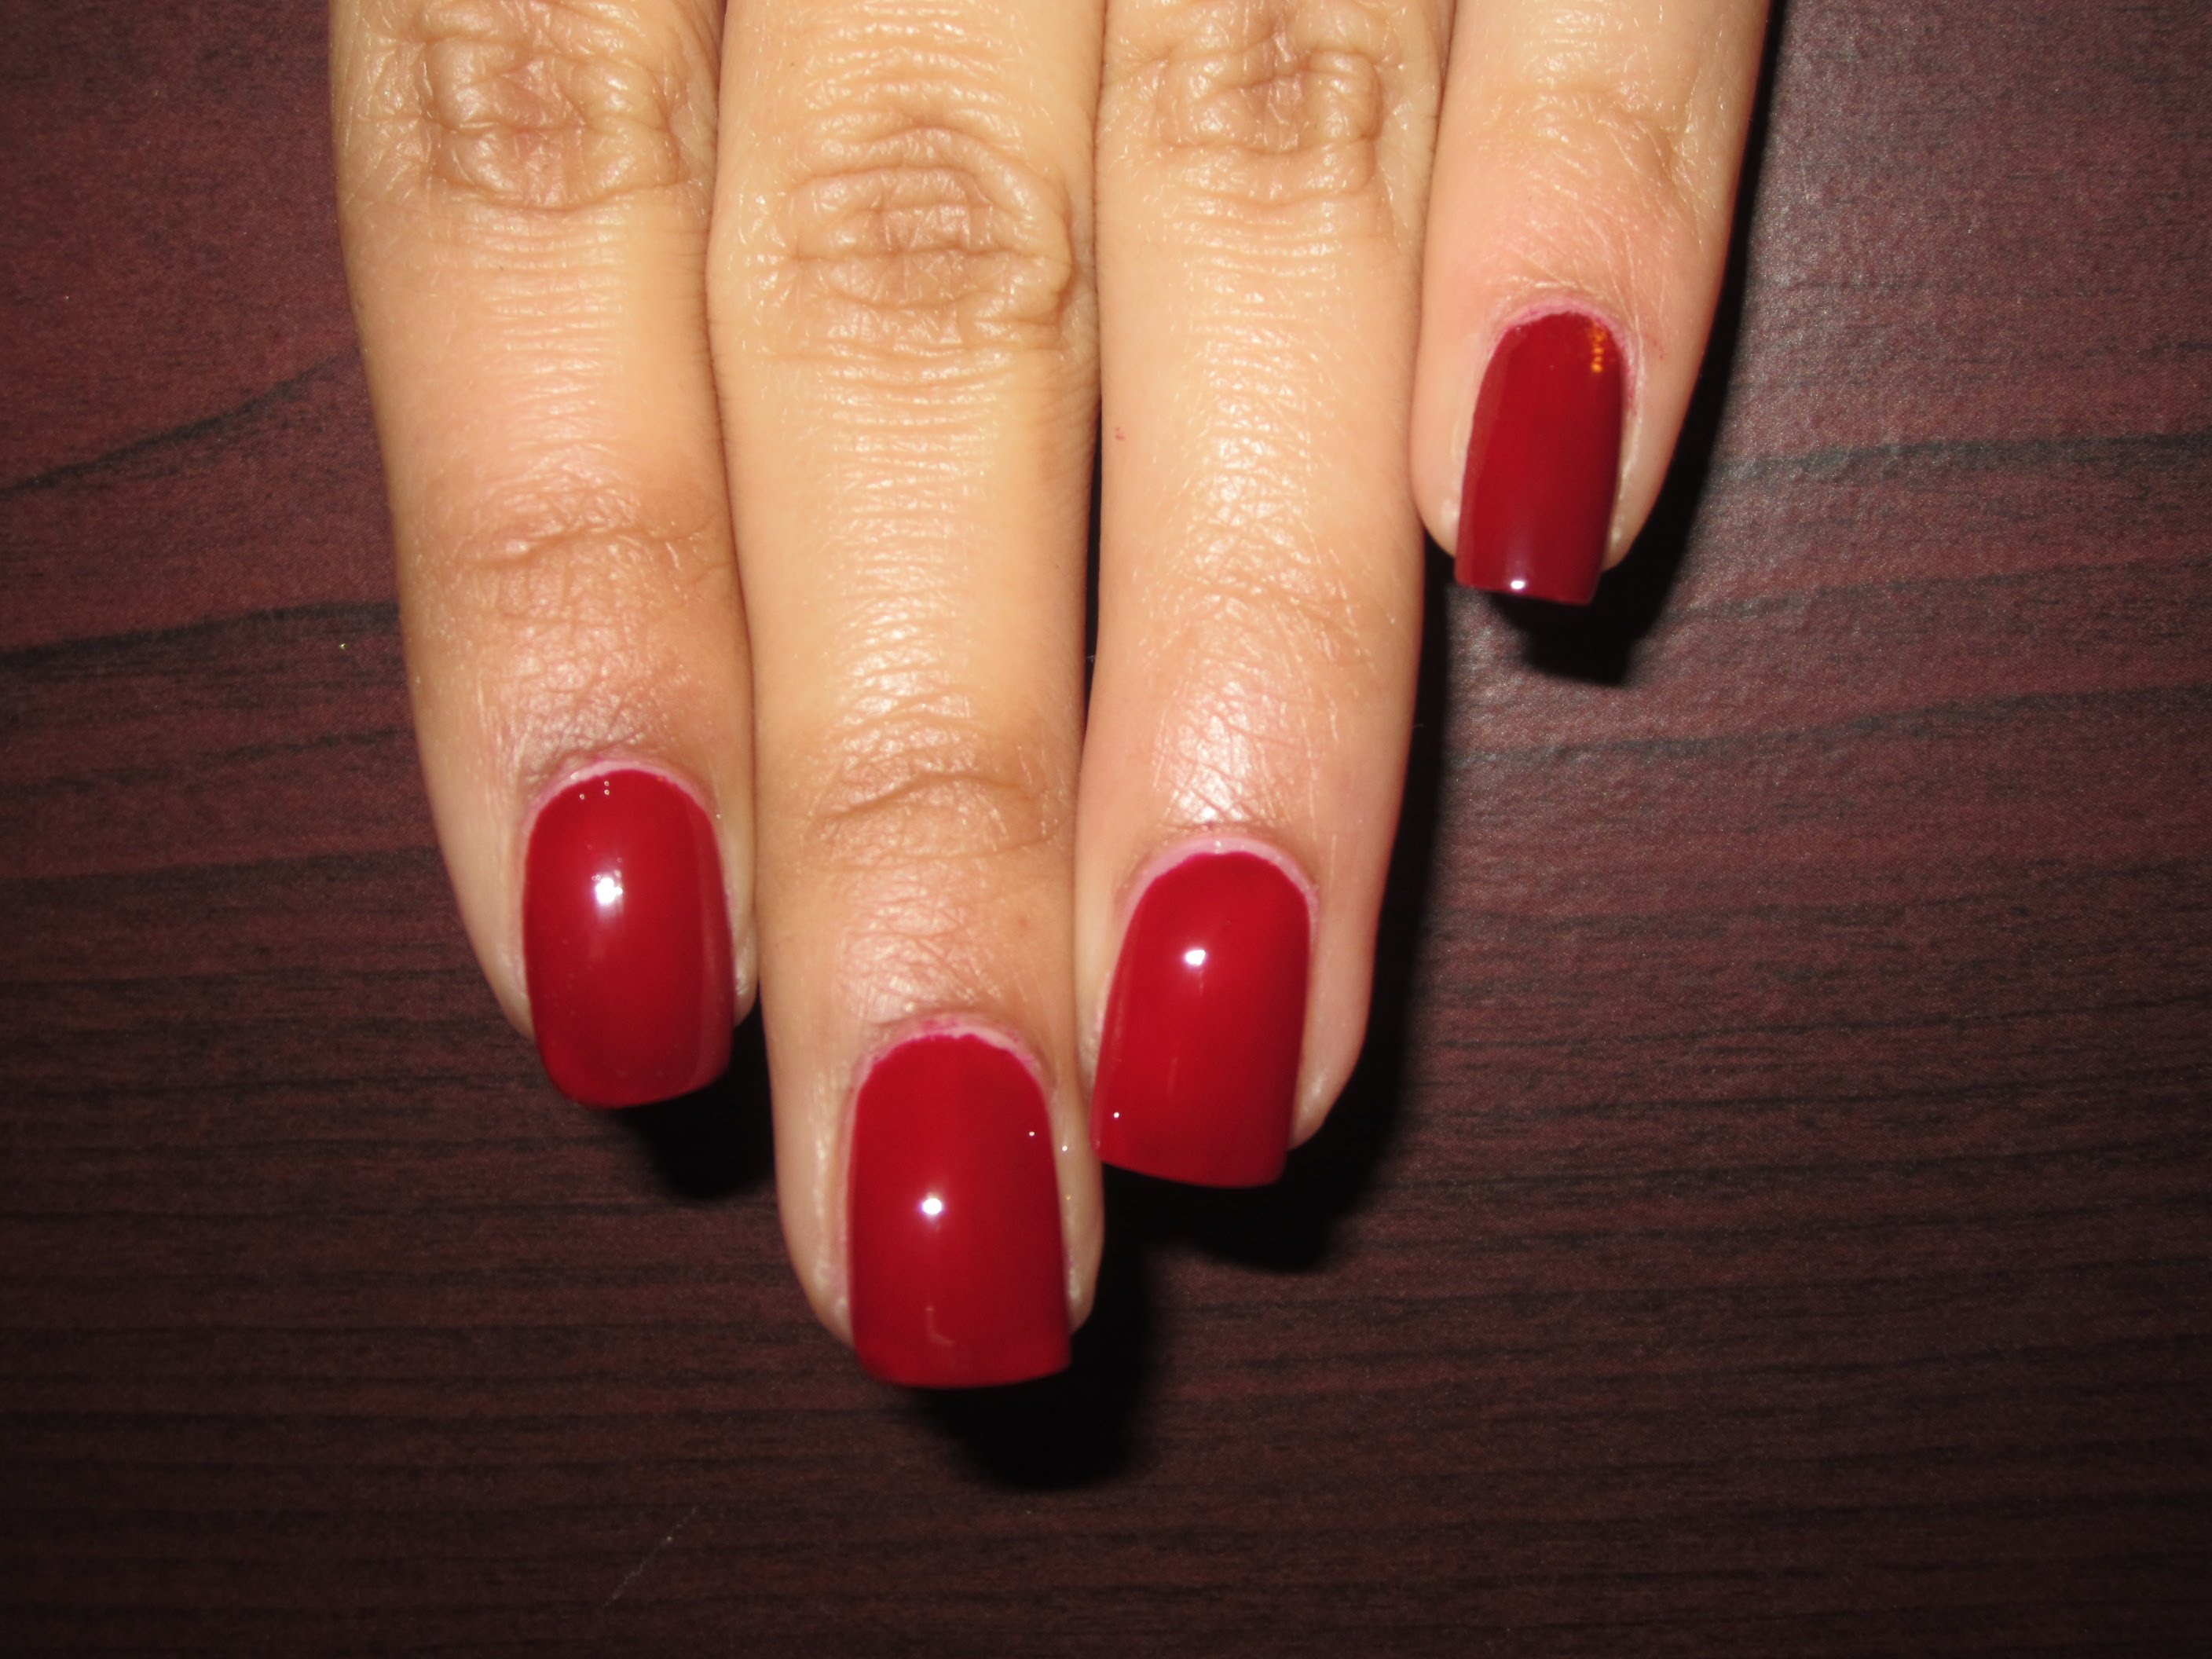 Drawn nail red HOW NAILS TO PAINT PERFECTLY